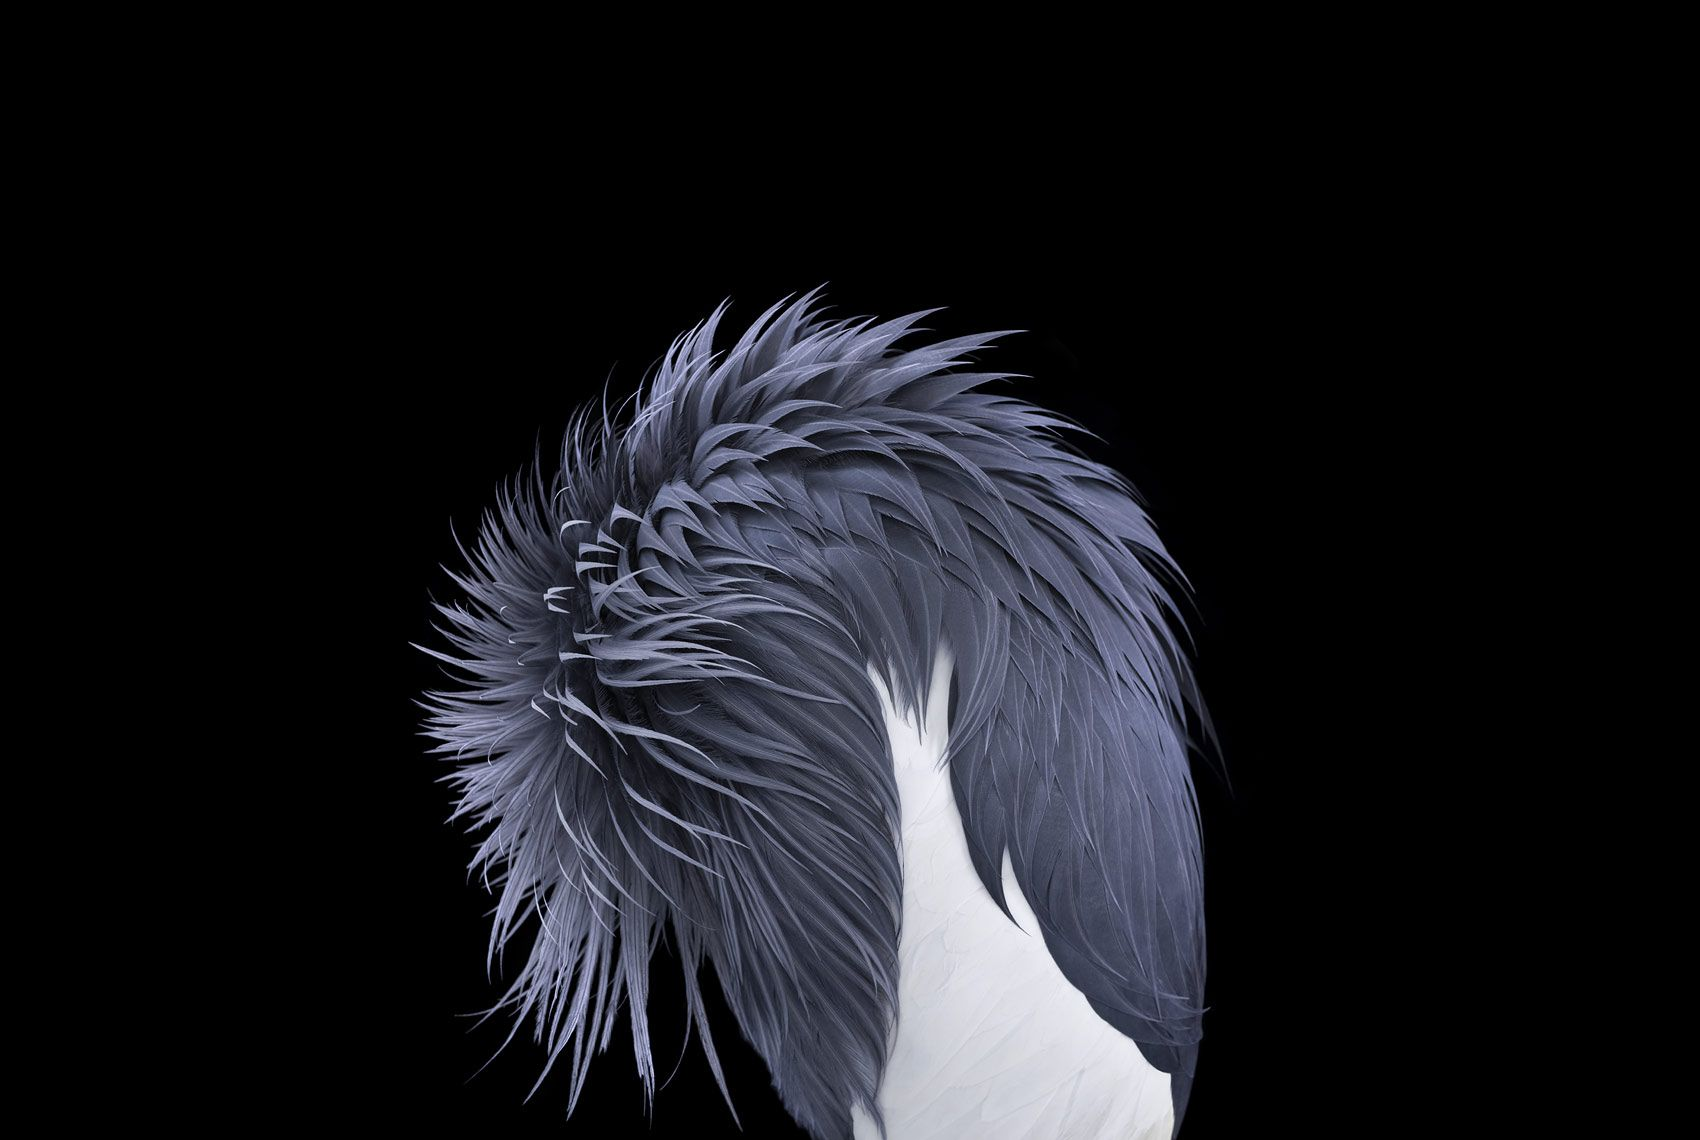 African Crowned Crane #4,  Los Angeles, CA, 2011,Brad Wilson,Photographie contemporaine